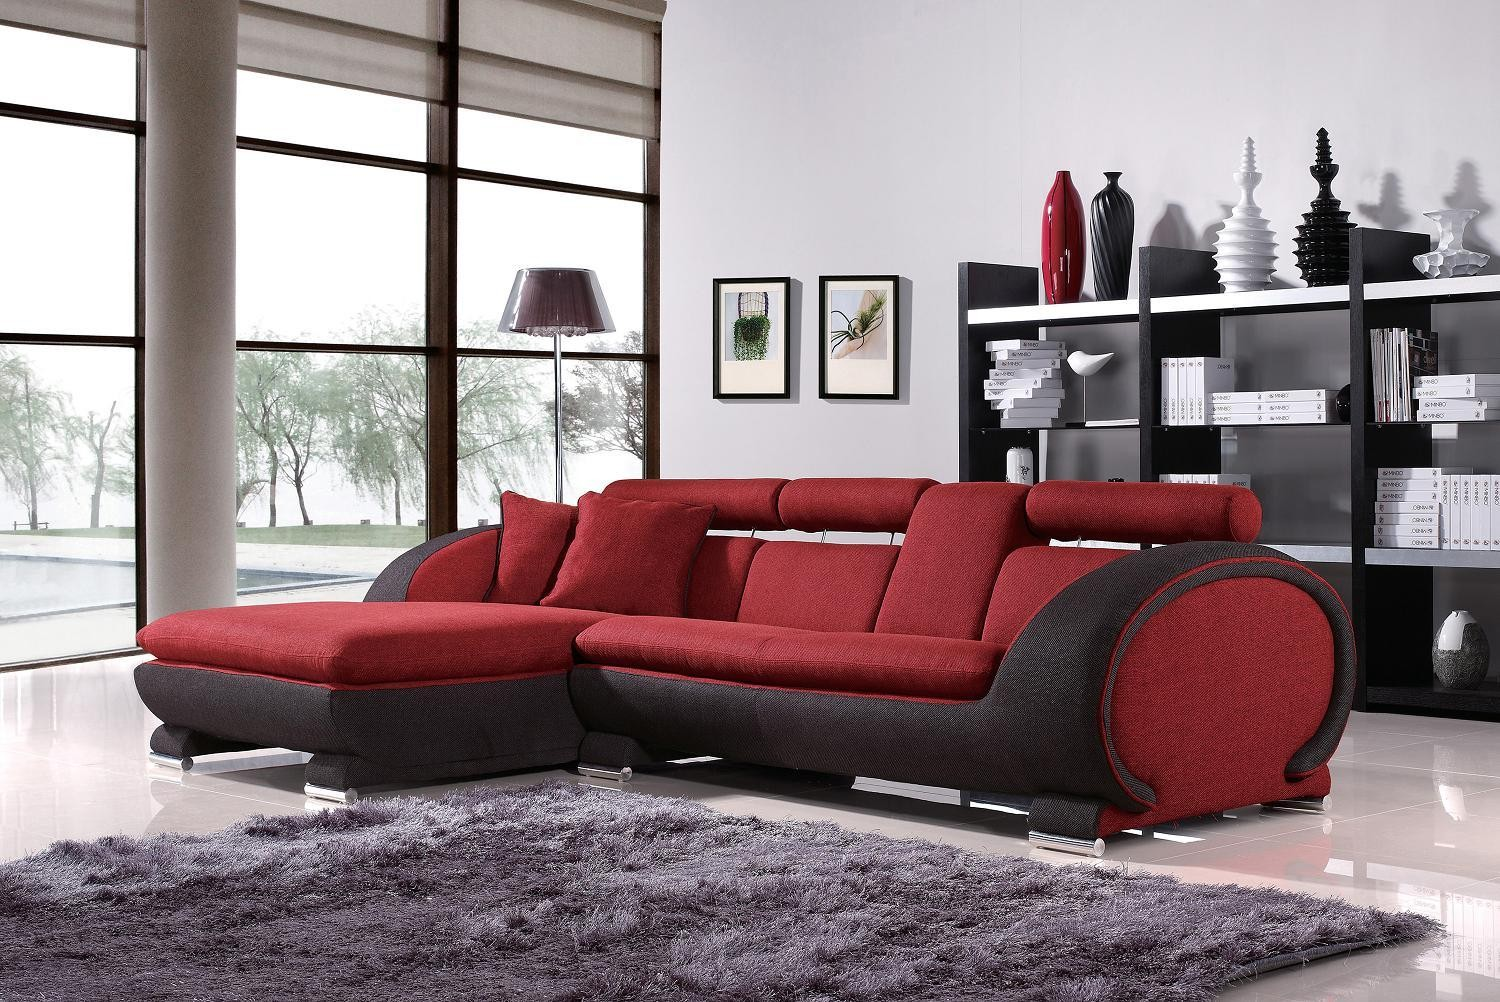 Save Floor Space With Multipurpose Modern Furniture La